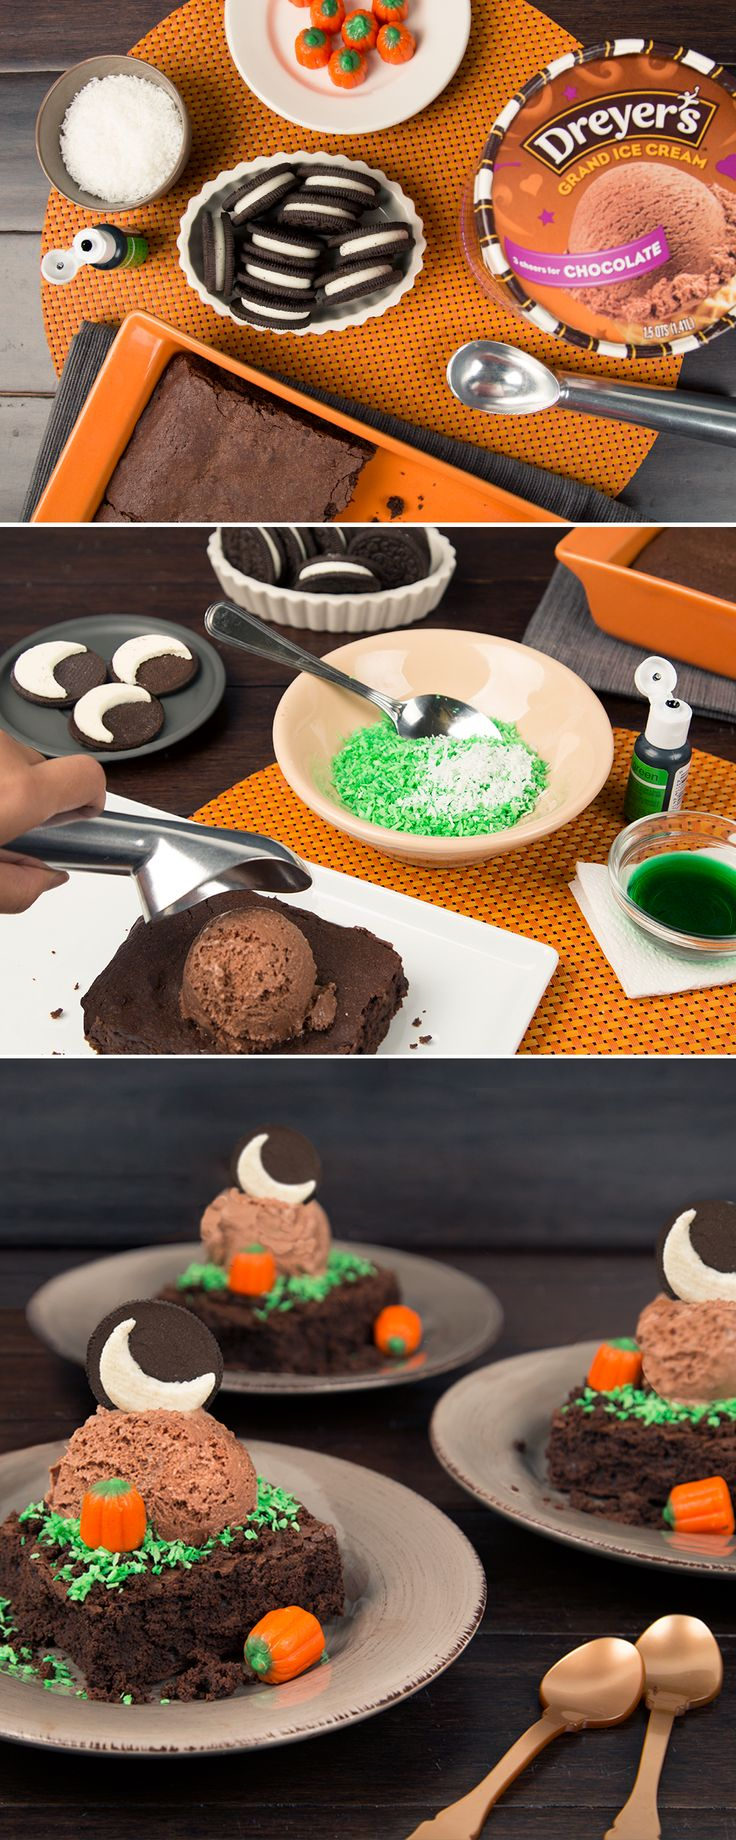 It's not spooky, it's scrumptious — and it's an easy, no-bake frozen treat  ~ love the oreo with one chocolate cookie off and a spoon scrape moon